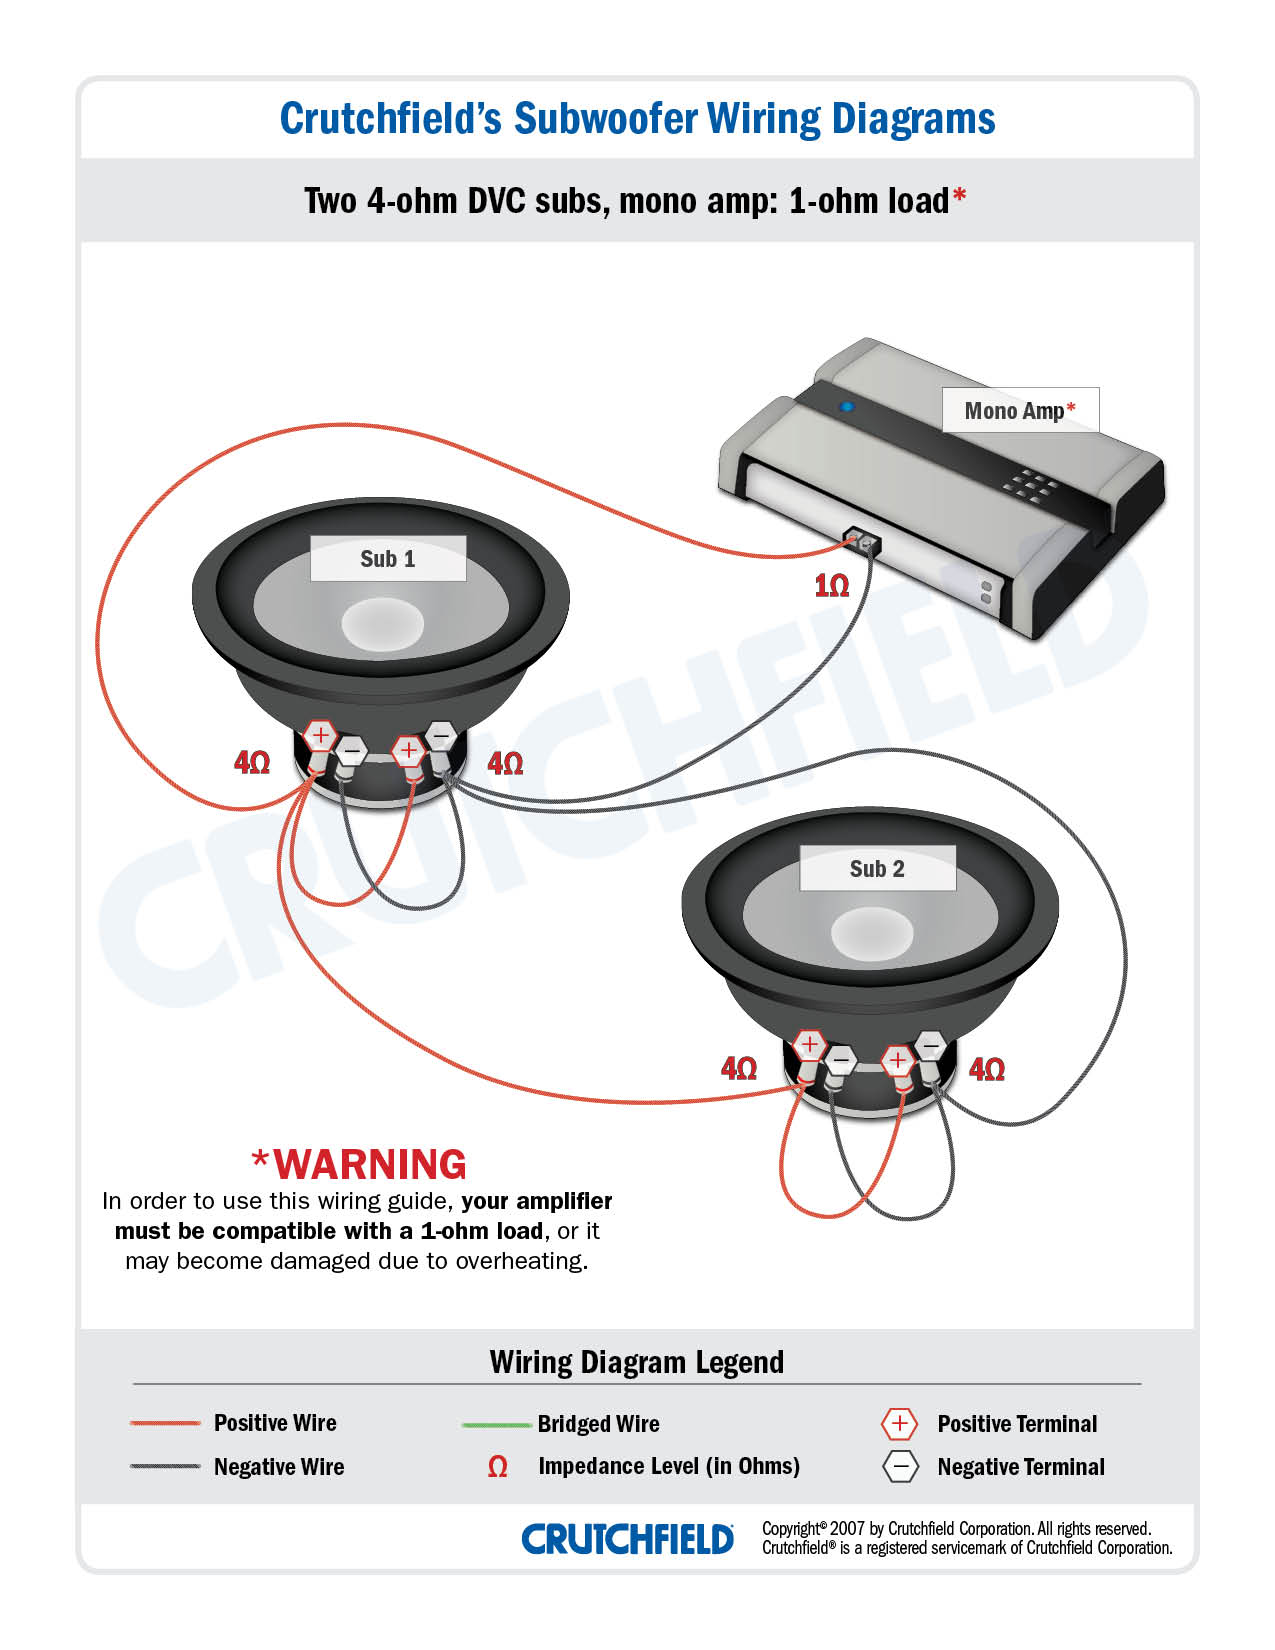 Subwoofer Wiring Diagram Single 4 Ohm Manual Guide